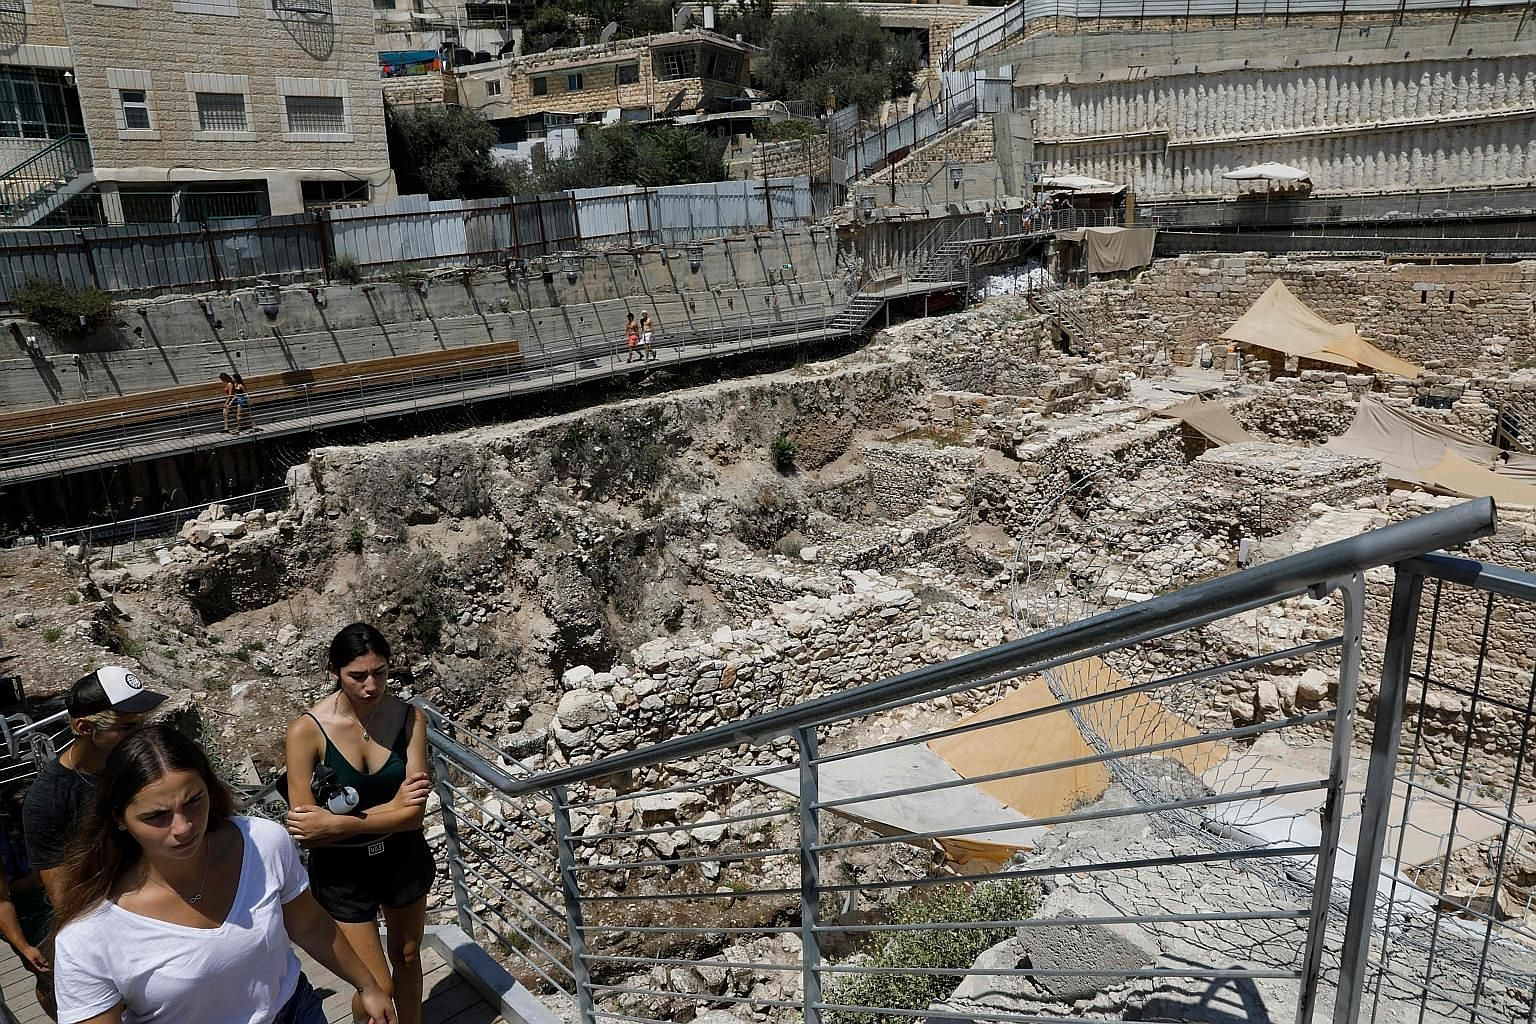 Tourists at the site where a rare golden earring, believed to be more than 2,000 years old, was discovered by Israeli archaeologists in Jerusalem. The city had a 38 per cent surge in tourists last year, the largest increase for any city worldwide tha